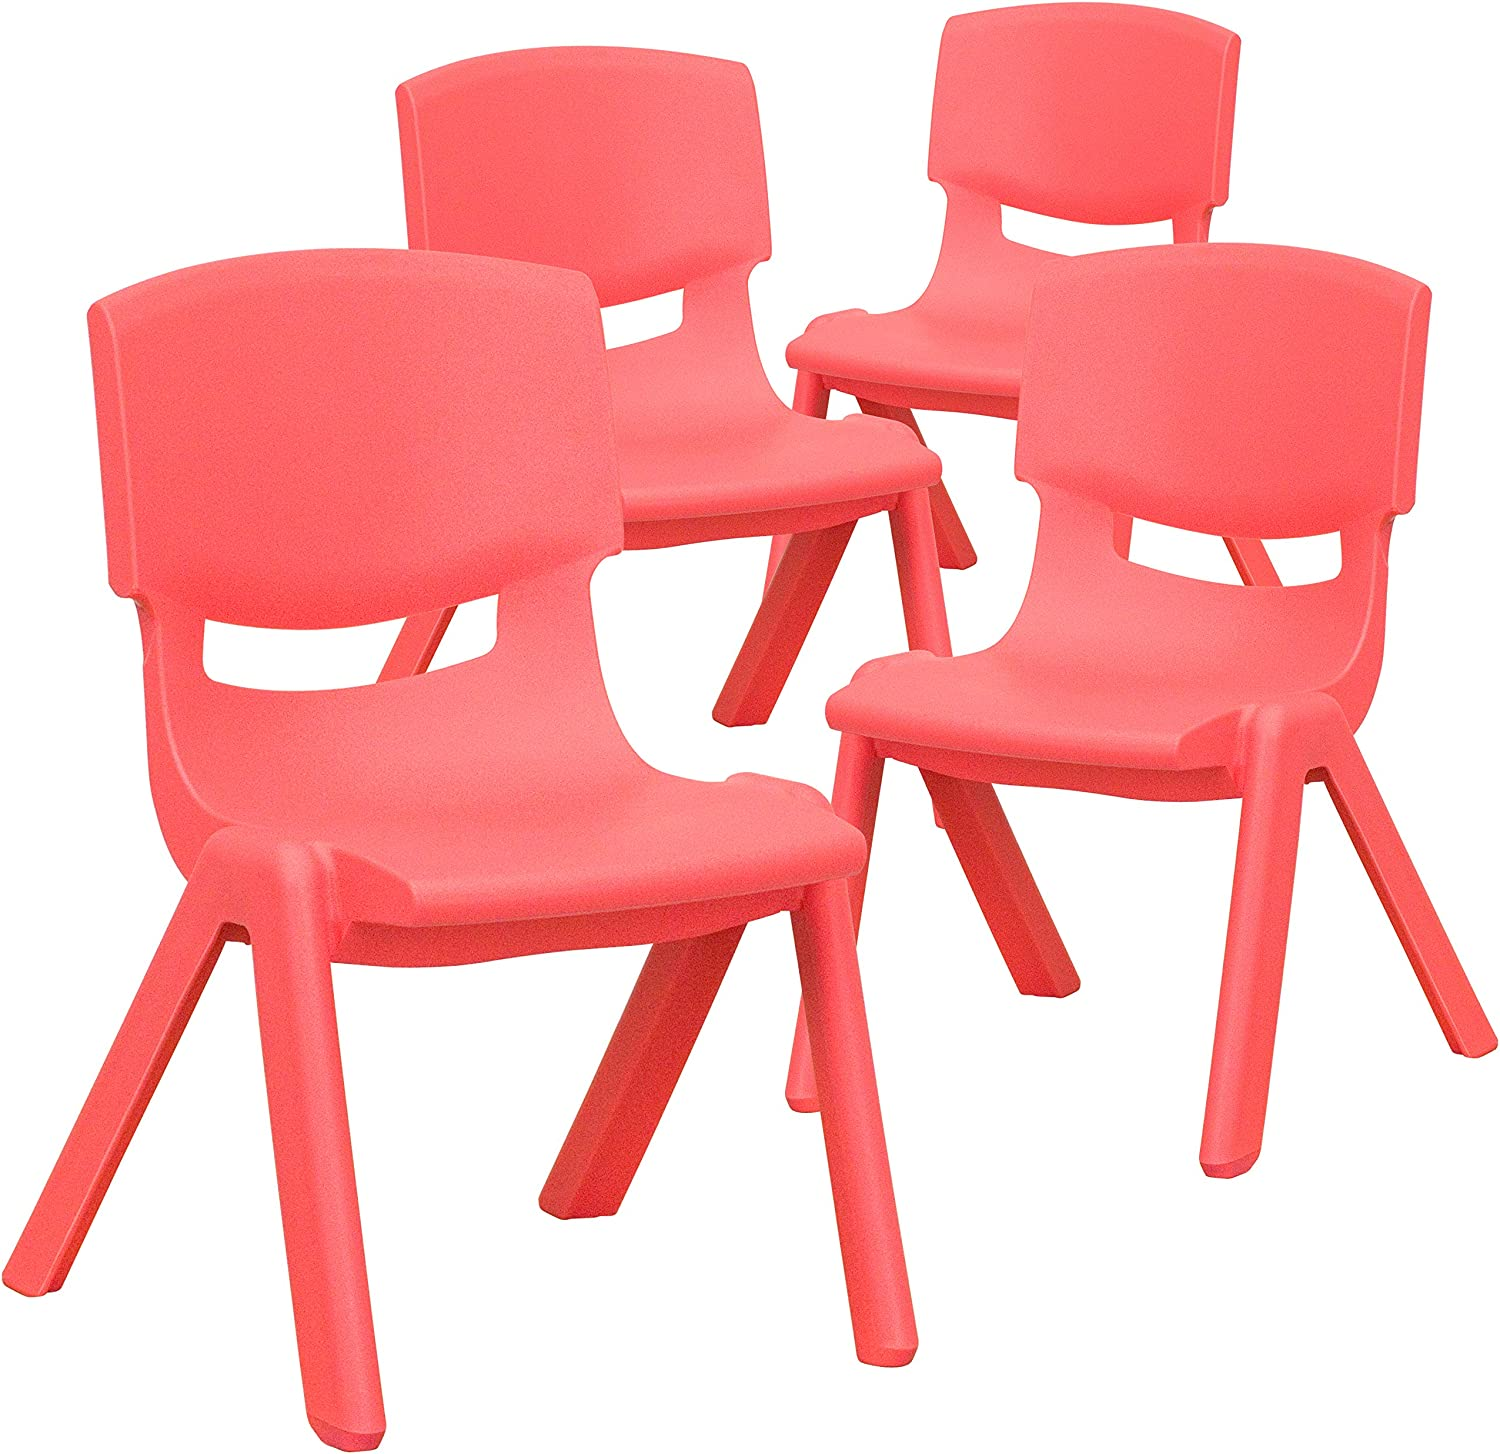 Flash Furniture 4 Pack Red Plastic Stackable School Chair with 10.5'' Seat Height